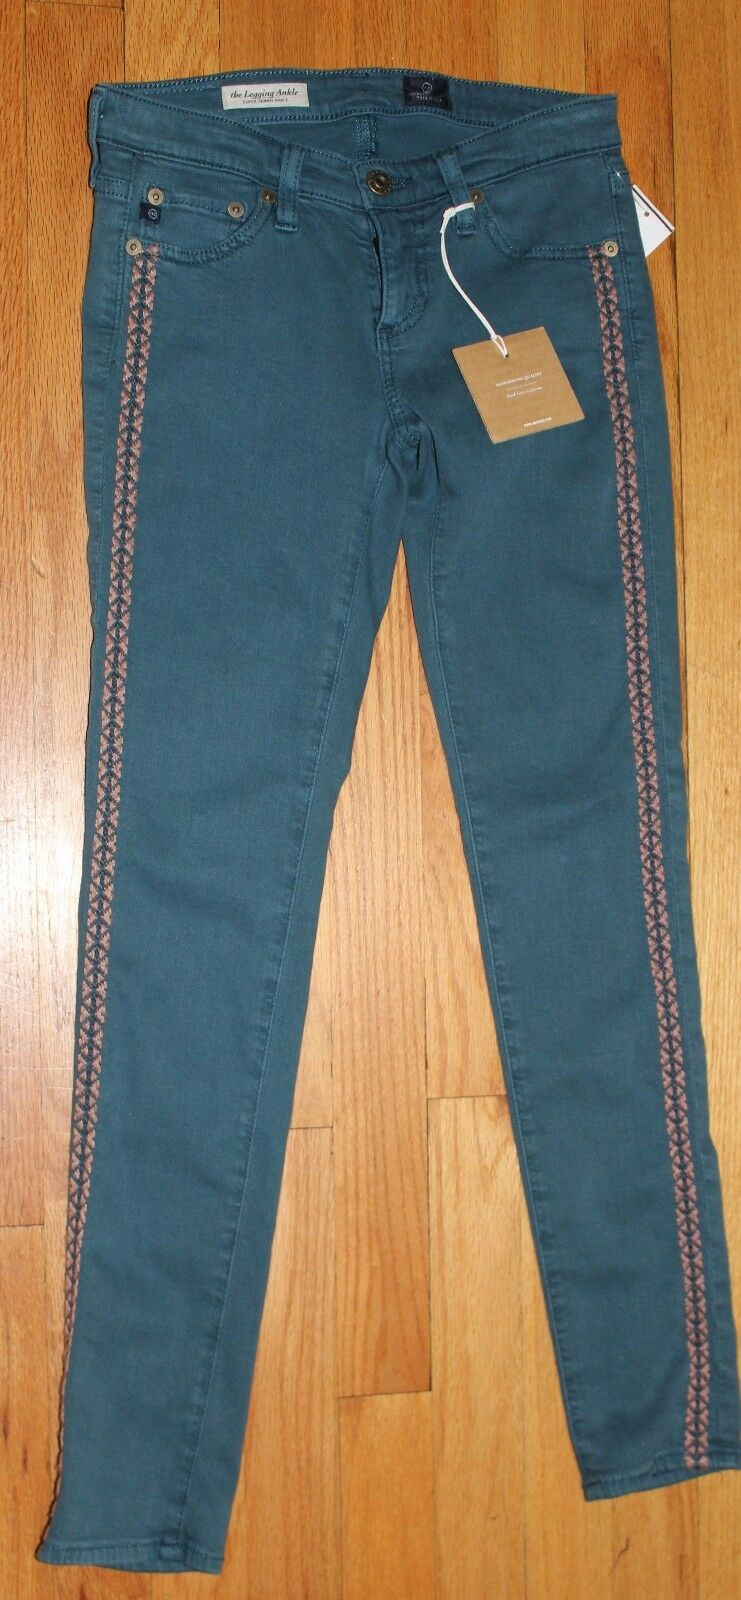 225 AG ADRIANO goldSCHMIED THE LEGGING SUPER SKINNY ANKLE JEANS SZ 24